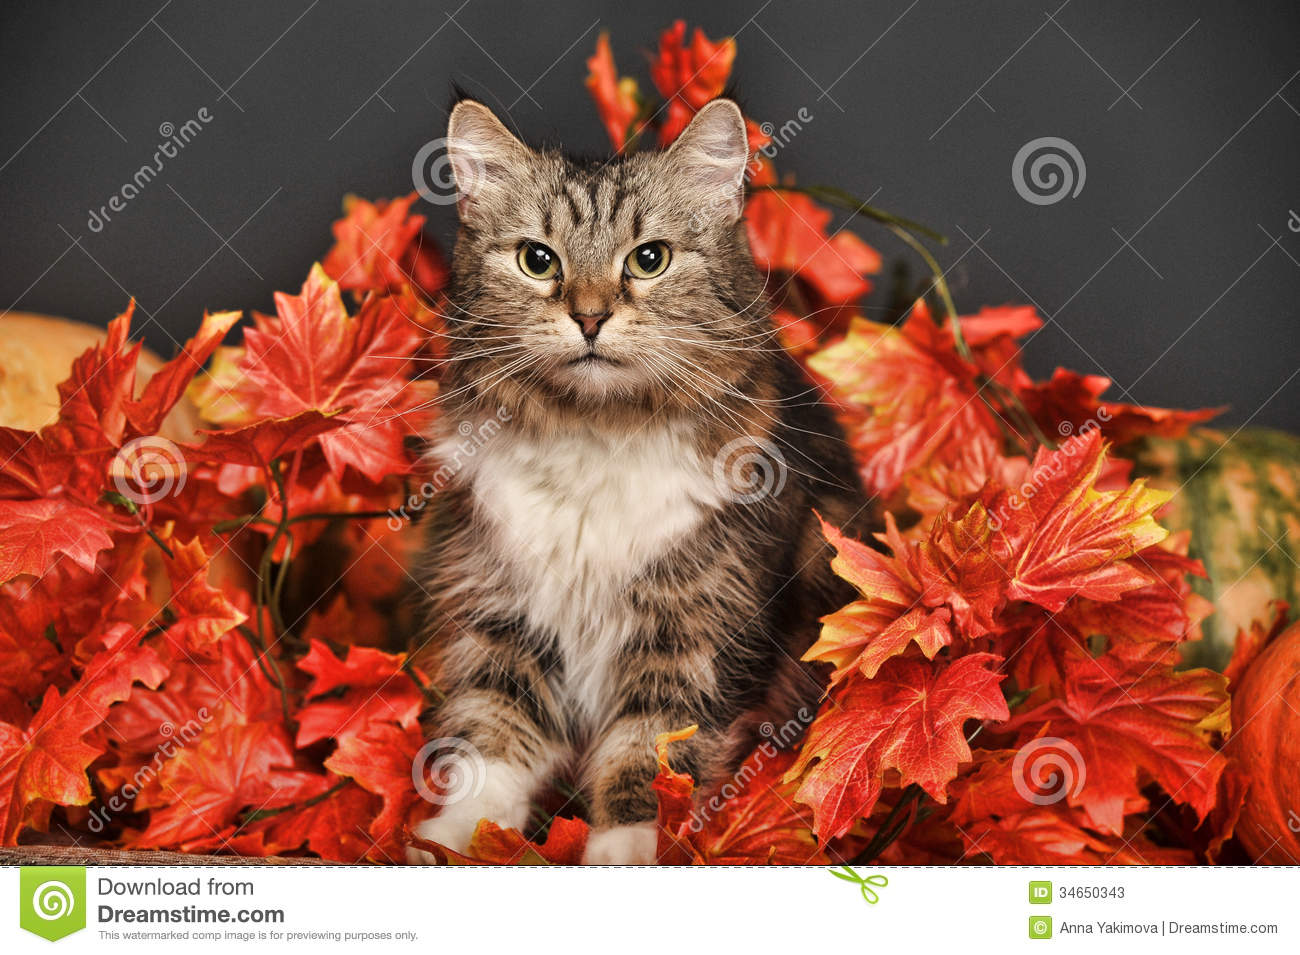 Maple Leaf Wallpaper For Fall Season Cat Amongst Autumn Leaves Stock Image Image Of Fluffy